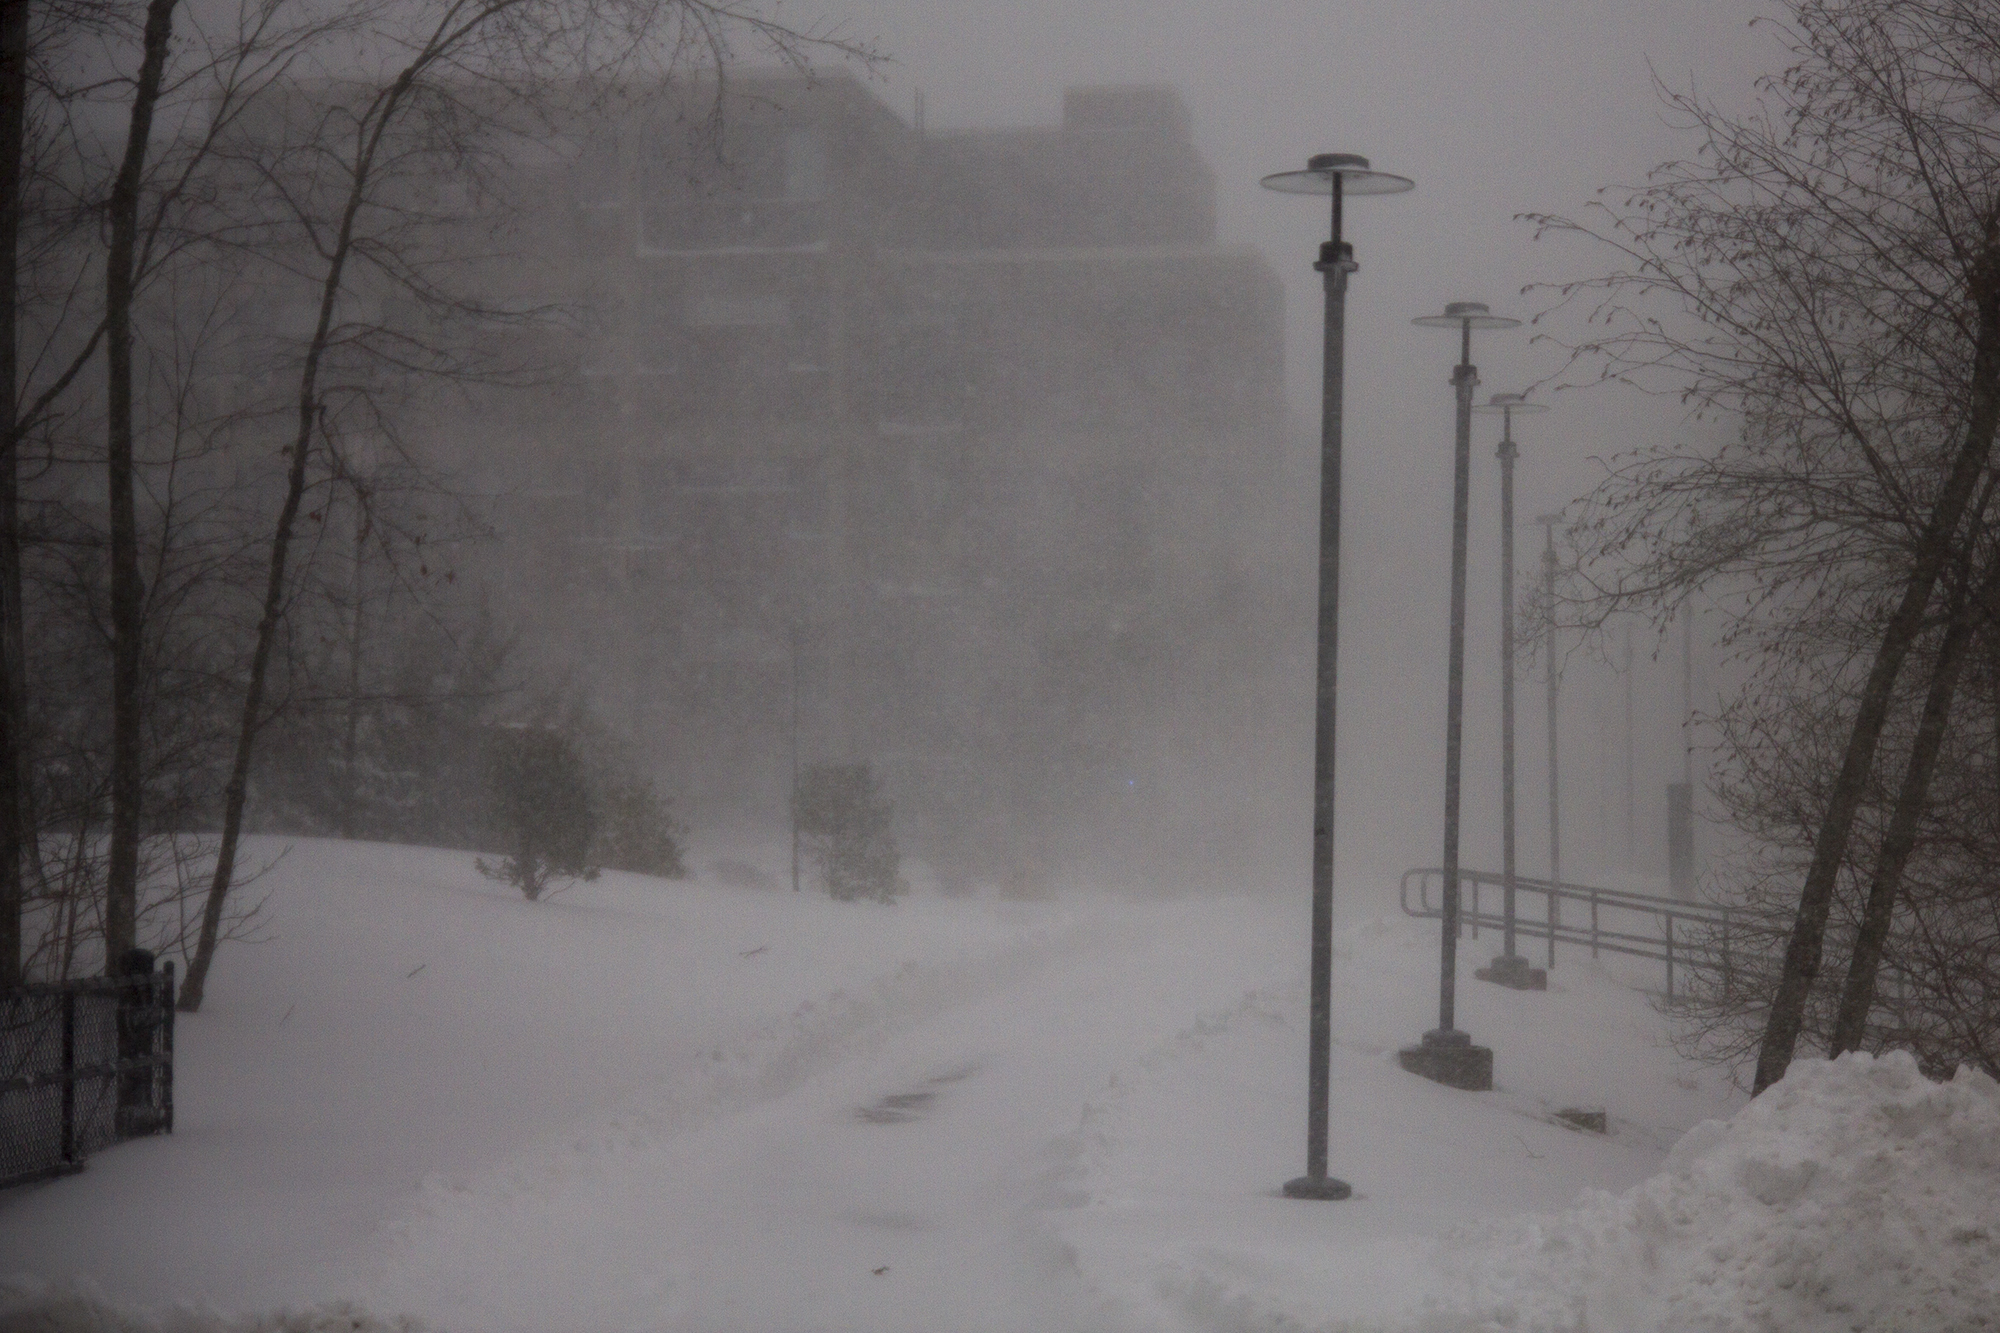 Stimson College is barely visible due to the blizzard conditions. ERIC SCHMID/THE STATESMAN